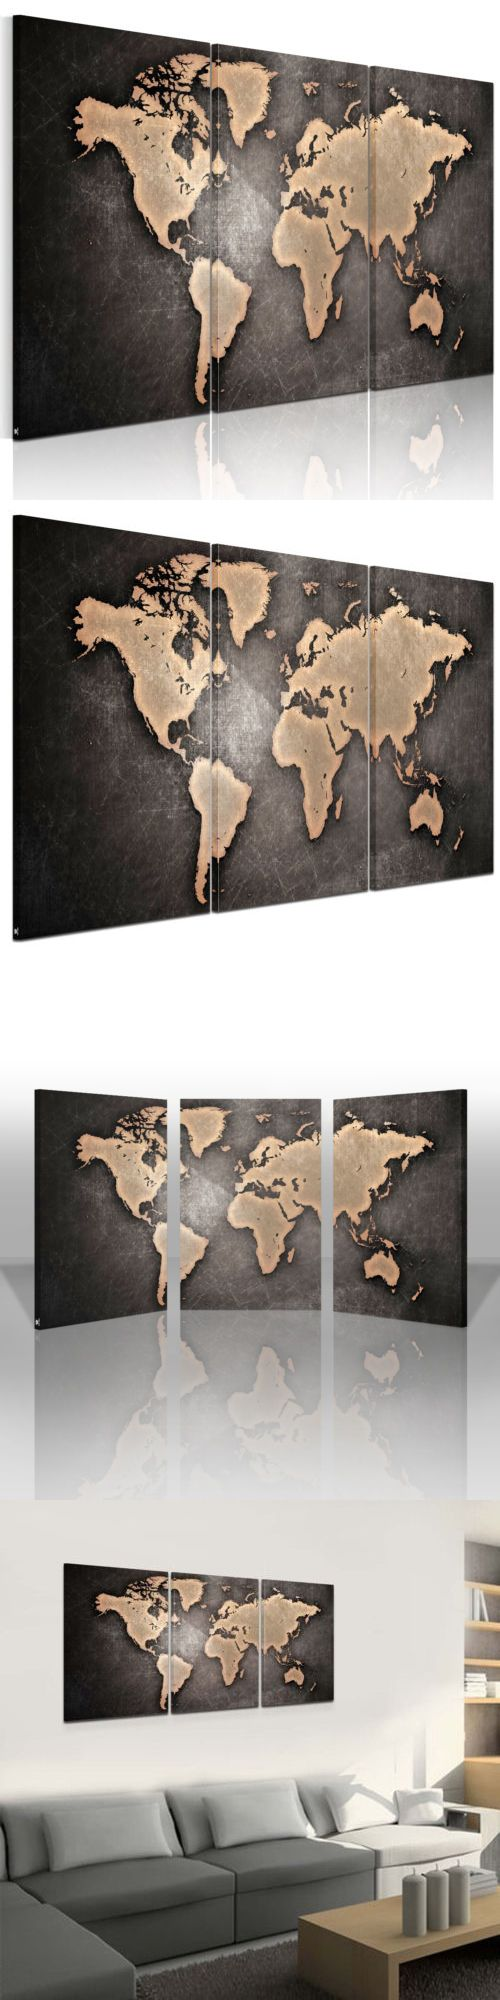 Posters and Prints 41511: World Map Framed Picture Hd Canvas Print Wall Art Painting Ready To Hang From Us -> BUY IT NOW ONLY: $43.99 on eBay!